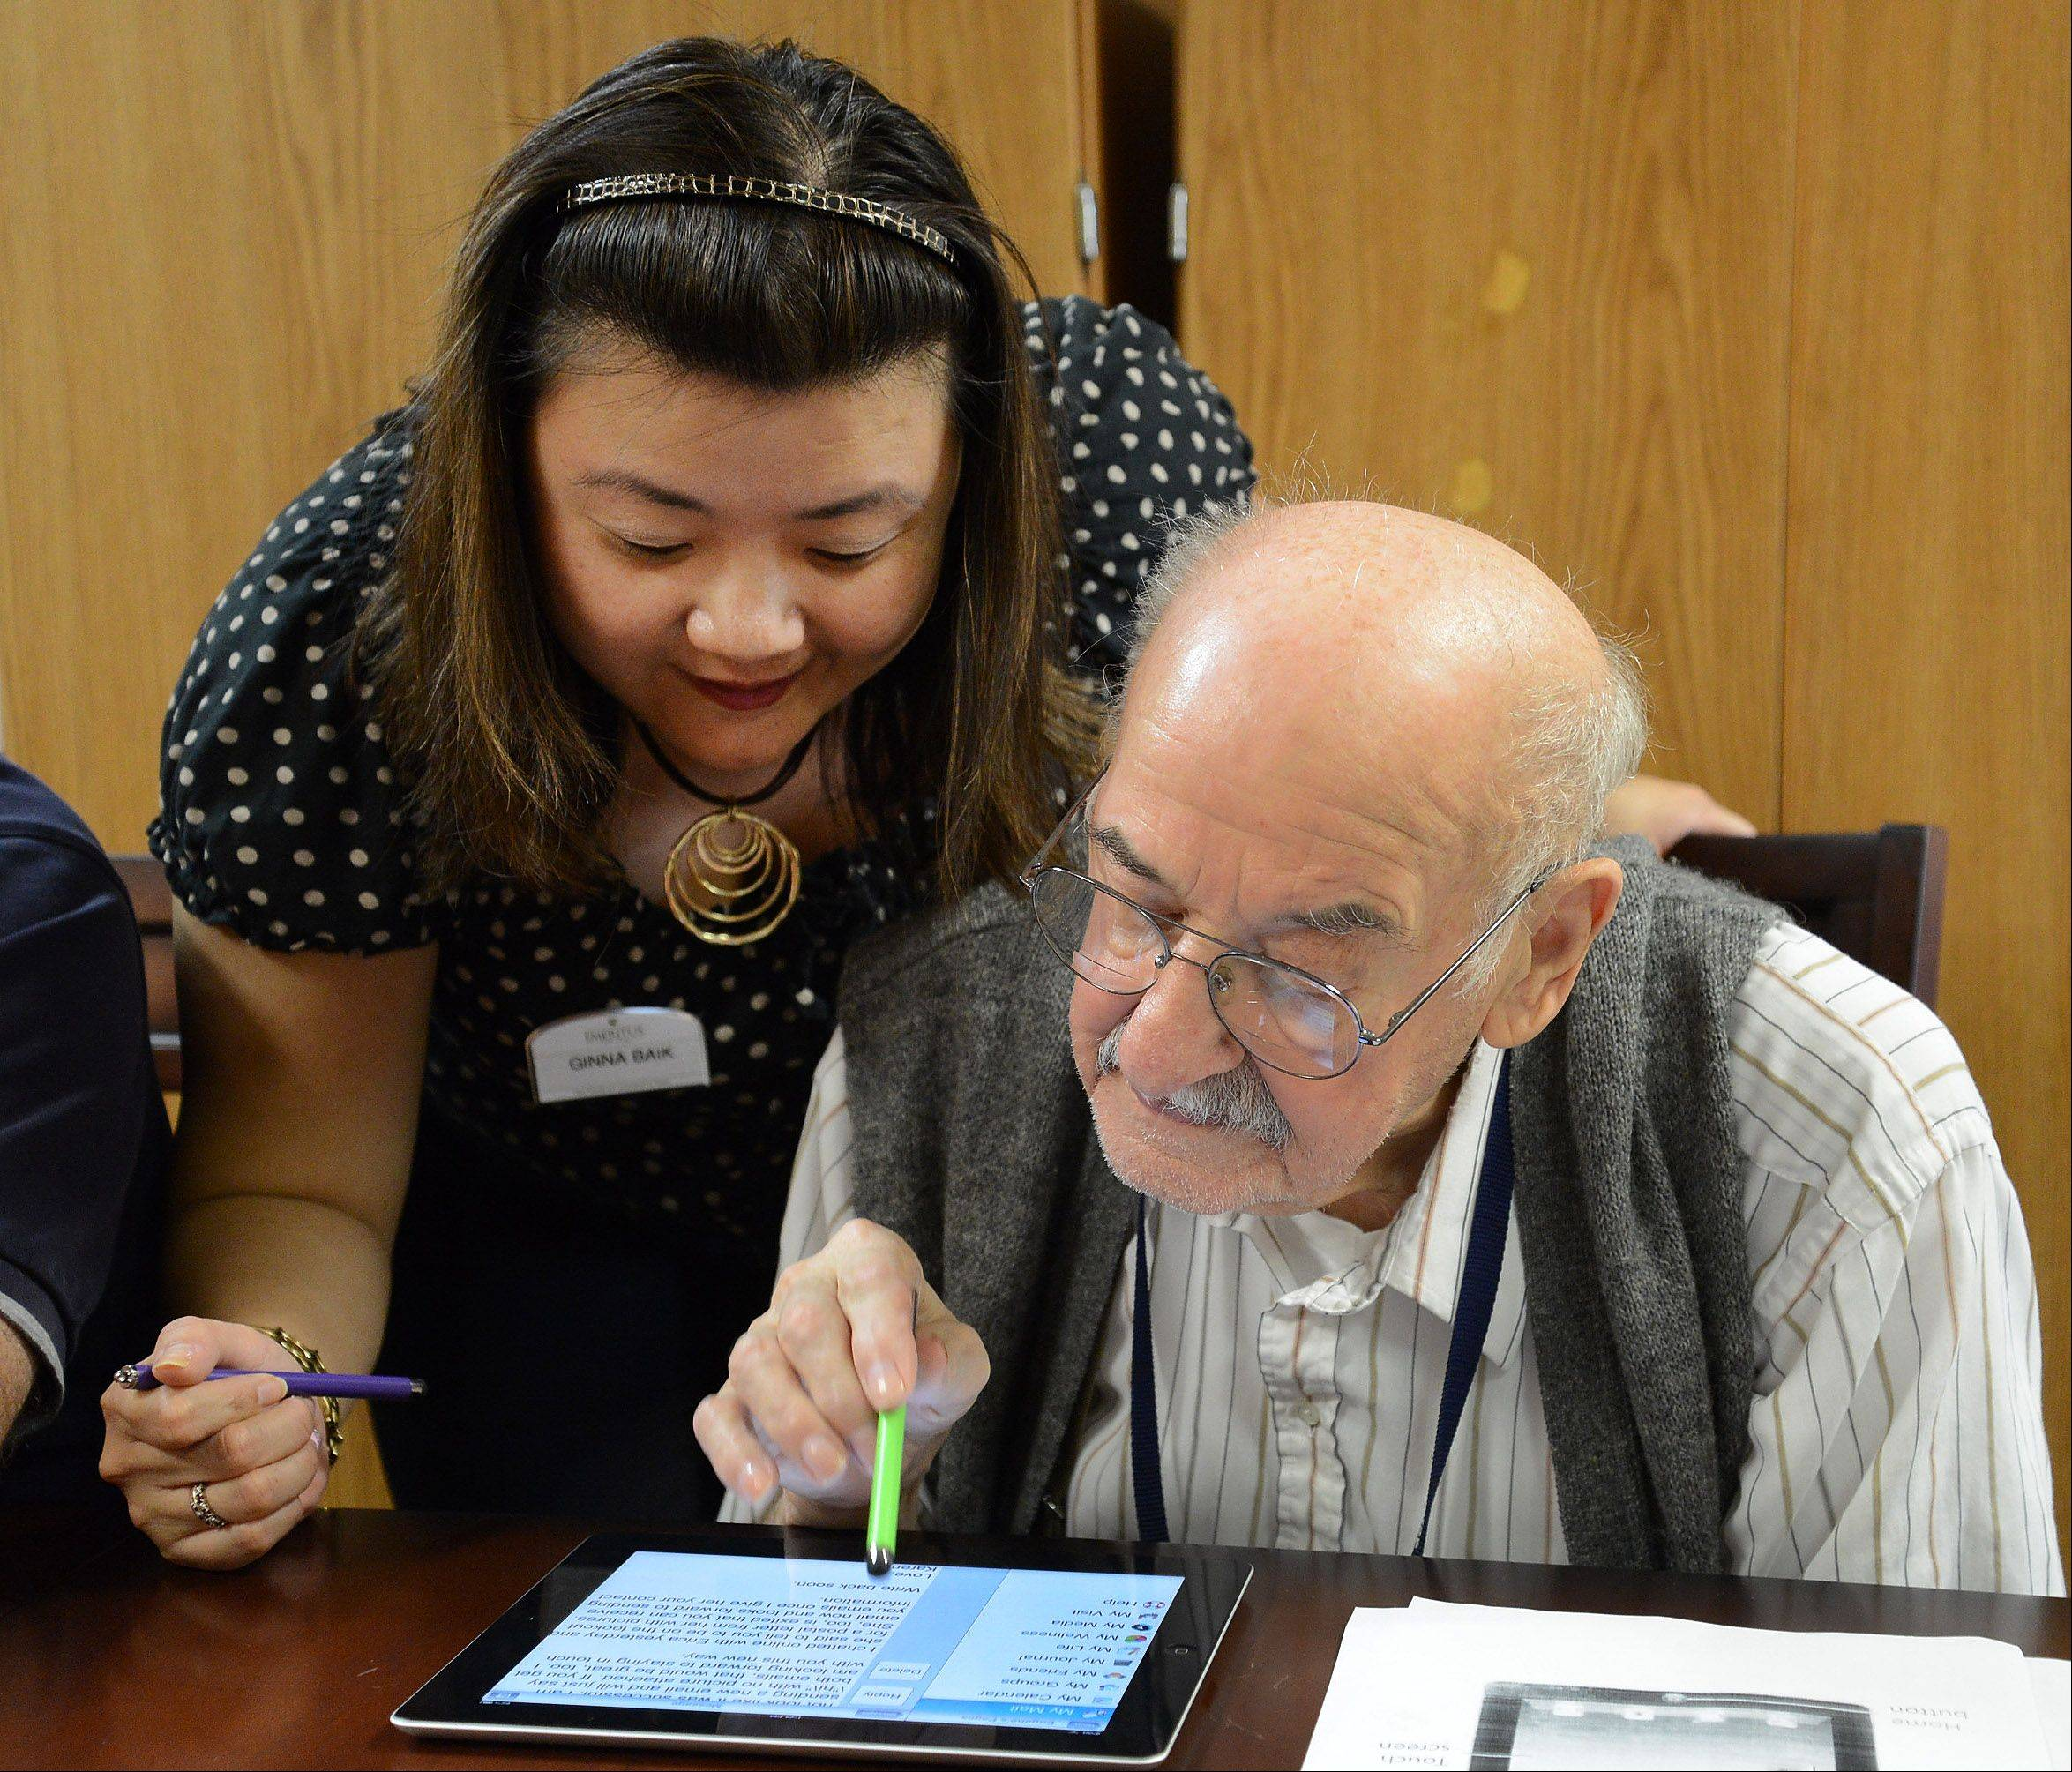 Using an iPad app designed for seniors, Emeritus Senior Living resident Eugene Keszycki, 89, of Hoffman Estates opens an email featuring a photo of his granddaughter, as Ginna Baik, Emeritus's director of innovation, offers her help.